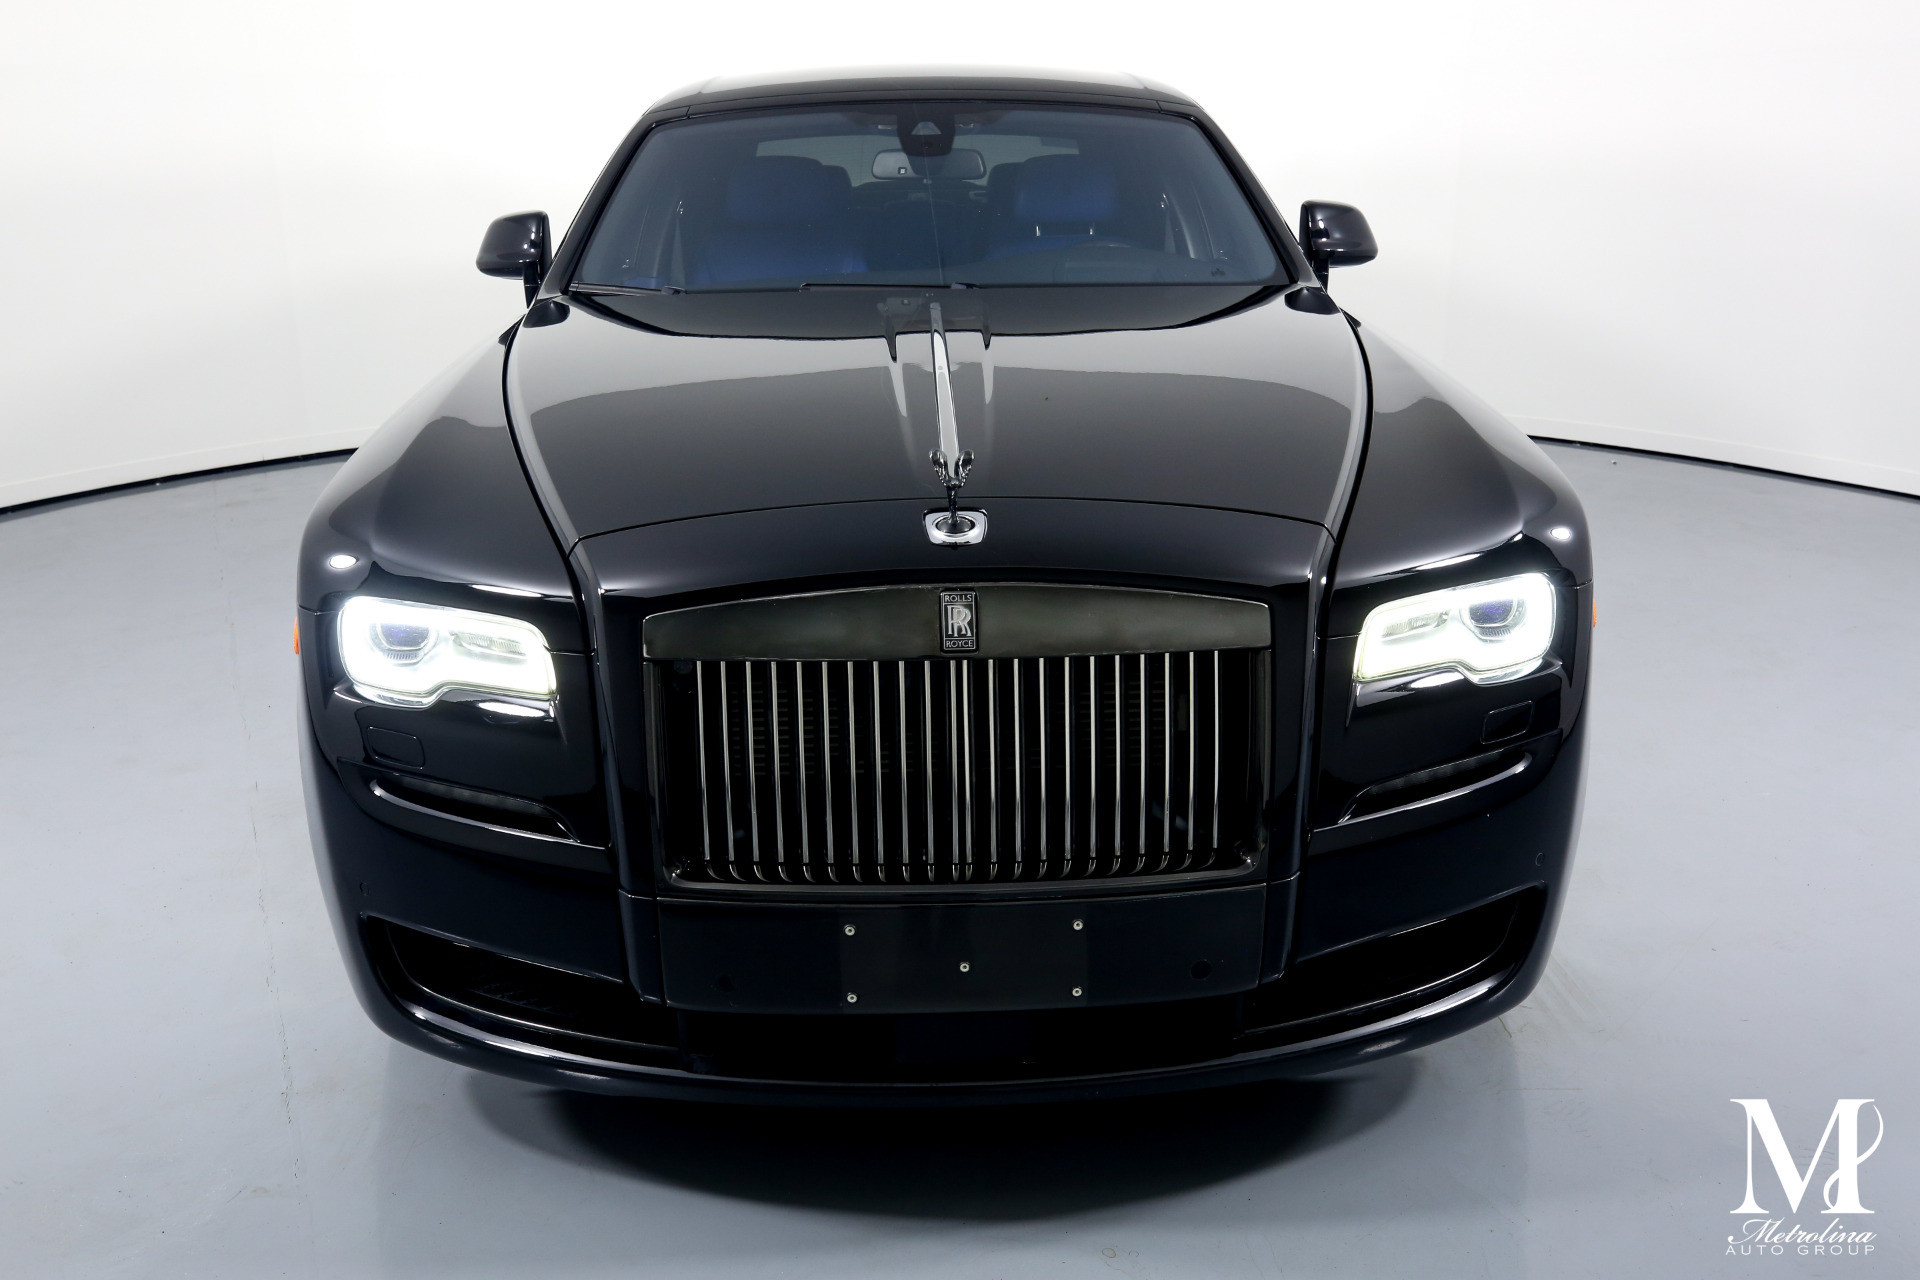 Used 2017 Rolls-Royce Ghost for sale $214,996 at Metrolina Auto Group in Charlotte NC 28217 - 3